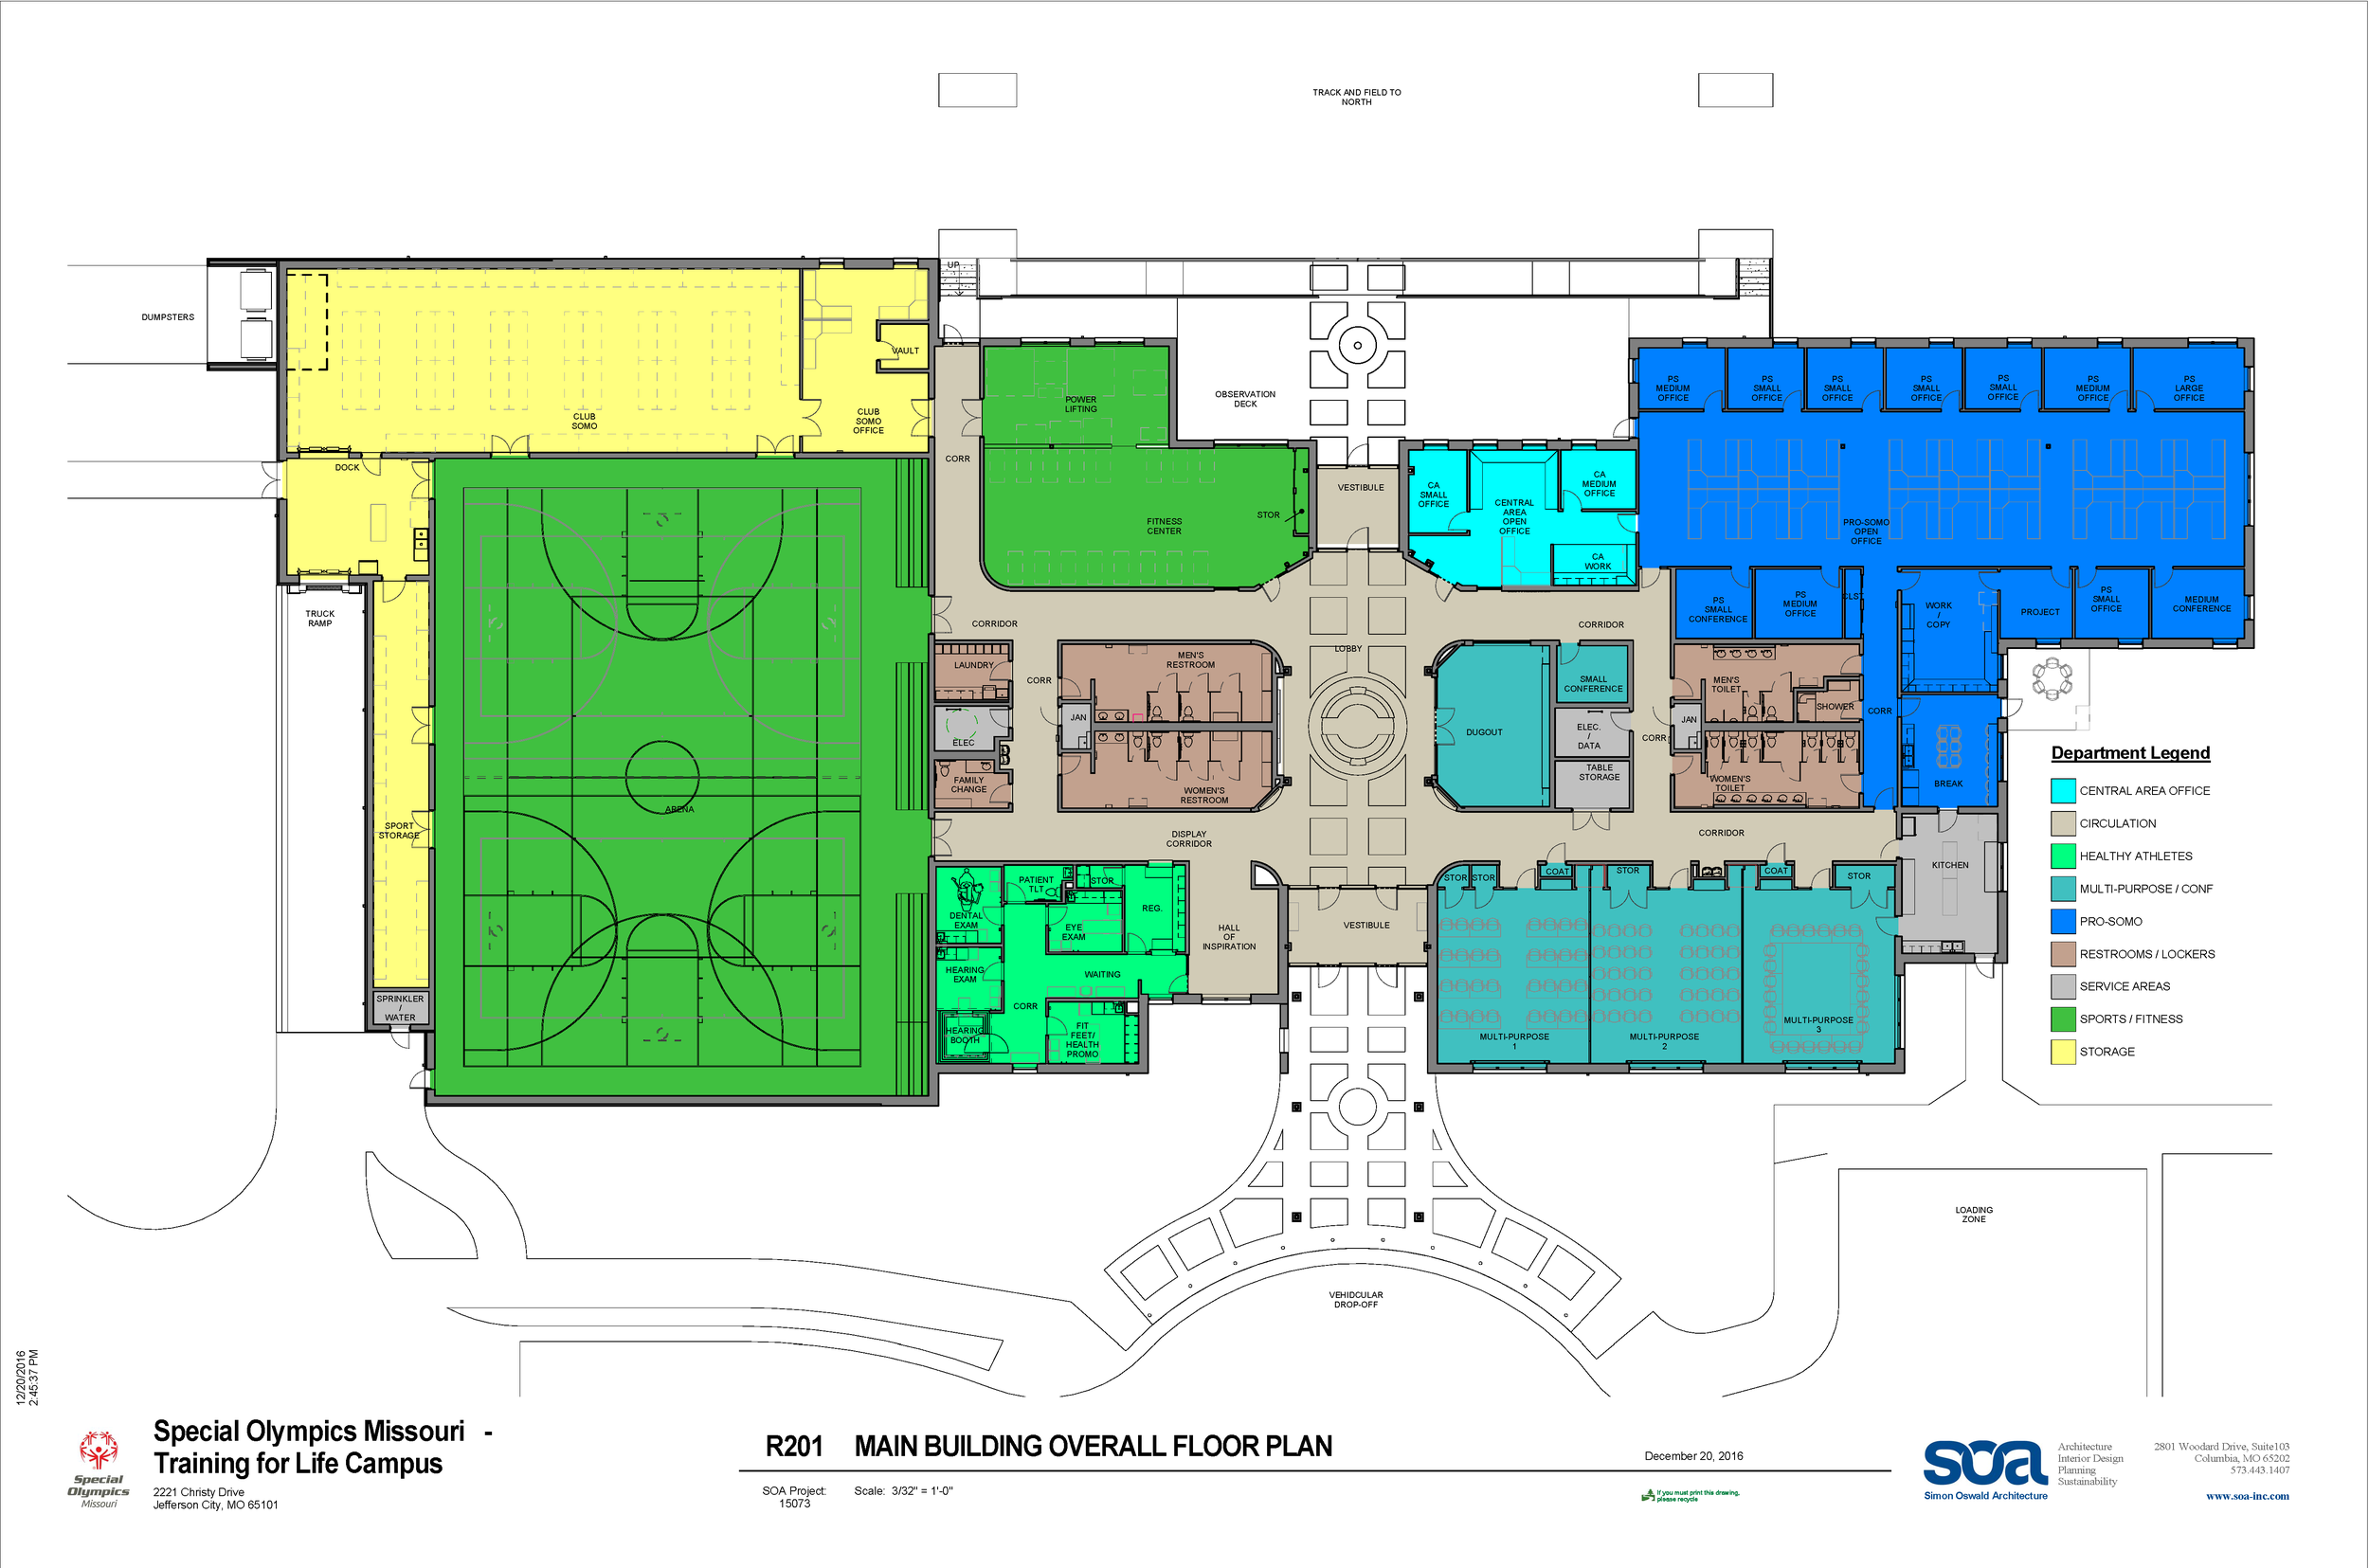 34,000 sq.-ft. facility - What the floorplan could look like for the Training for Life Campus